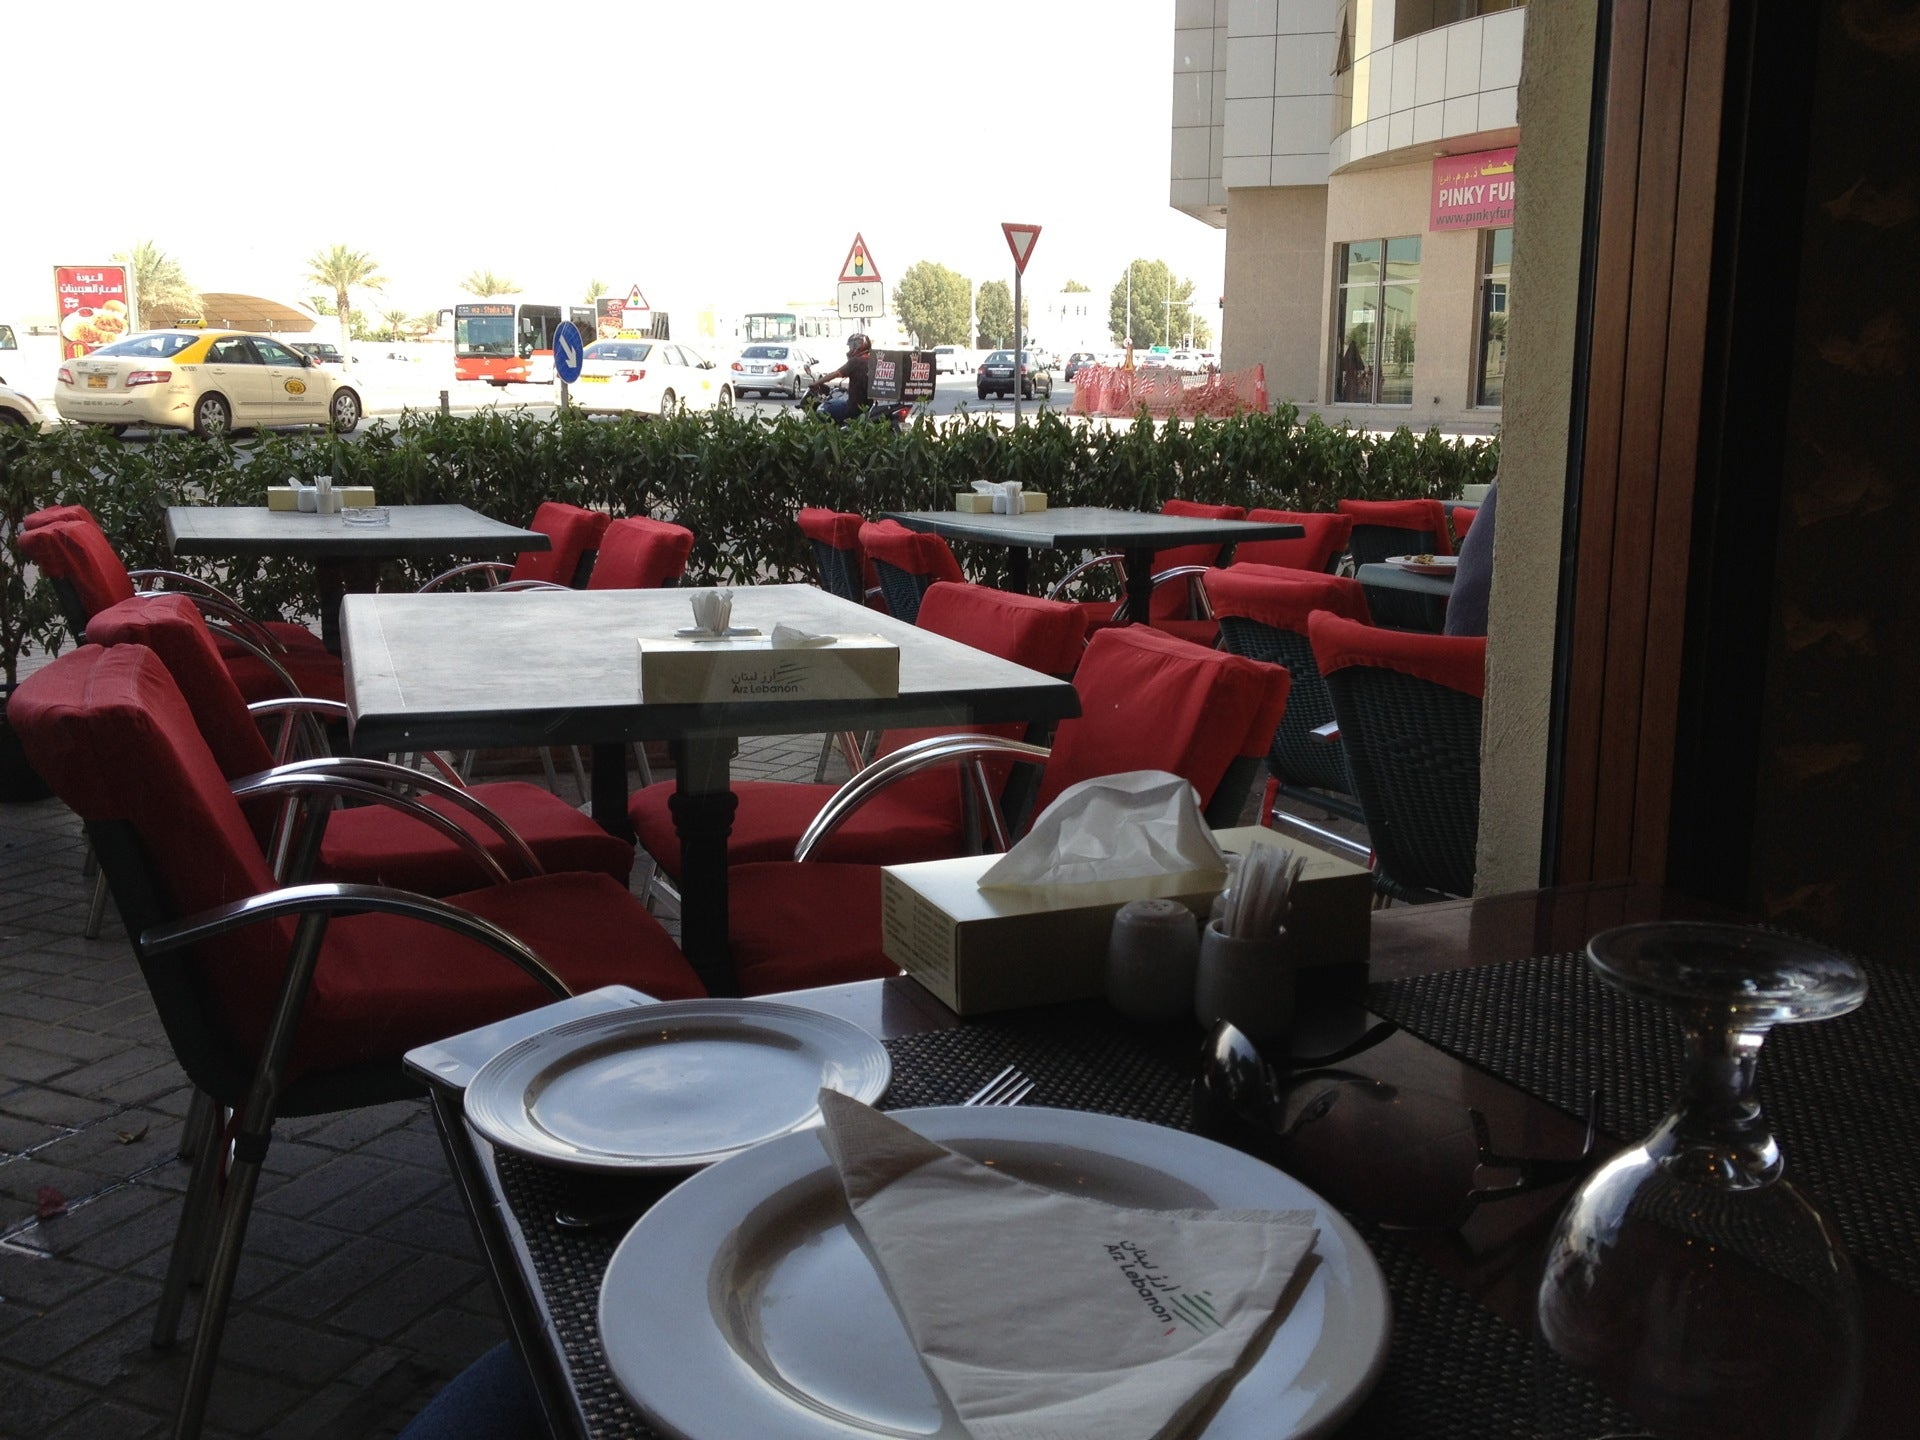 Arz lebanon downtown social photos downtown dubai dubai for Arz lebanese cuisine